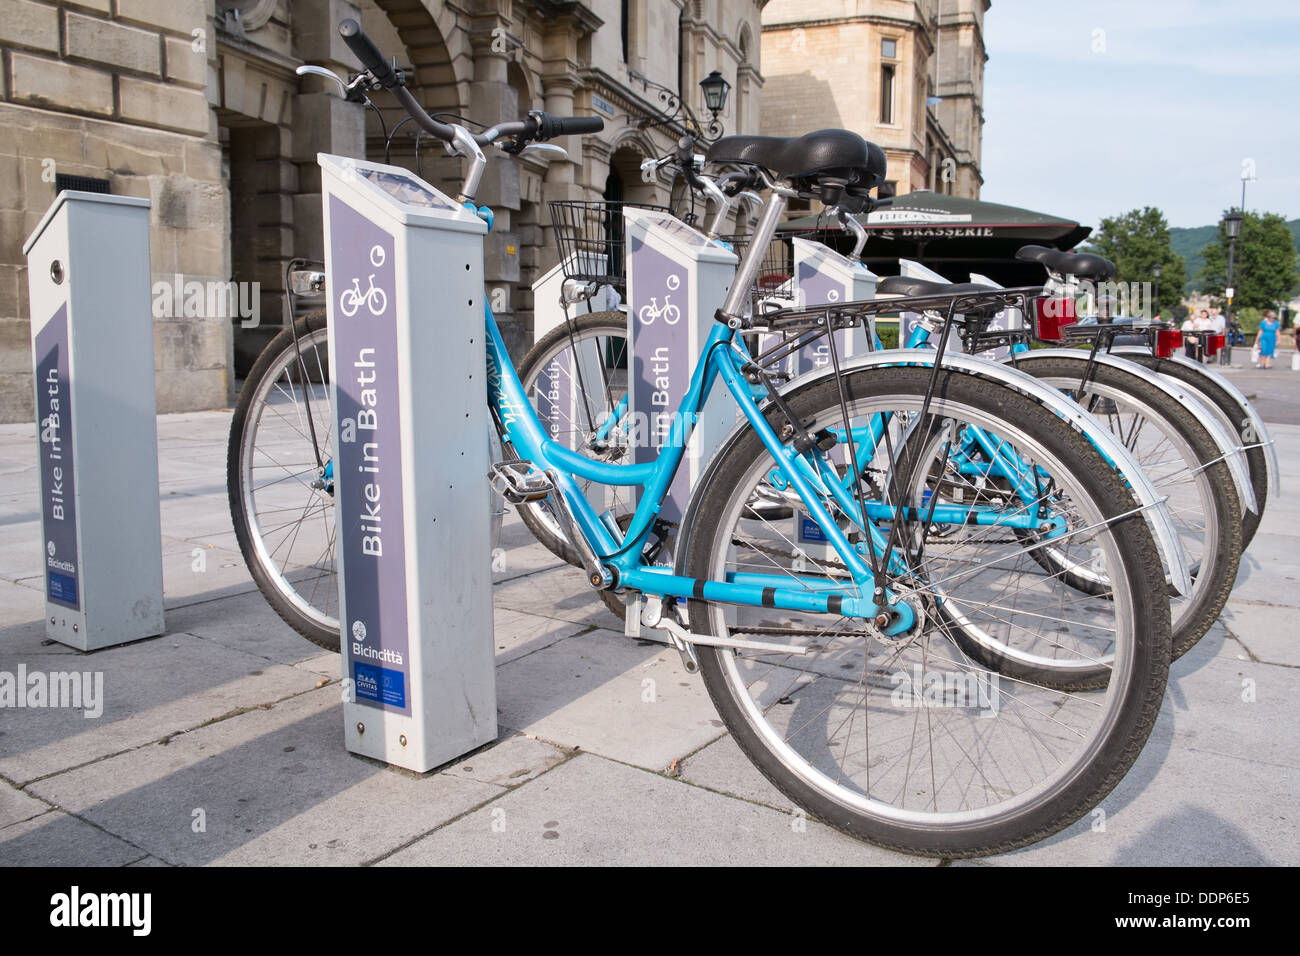 A Docking station for public rental bicycles in the centre of the world UNESCO heritage city of Bath in Somerset, England, UK - Stock Image